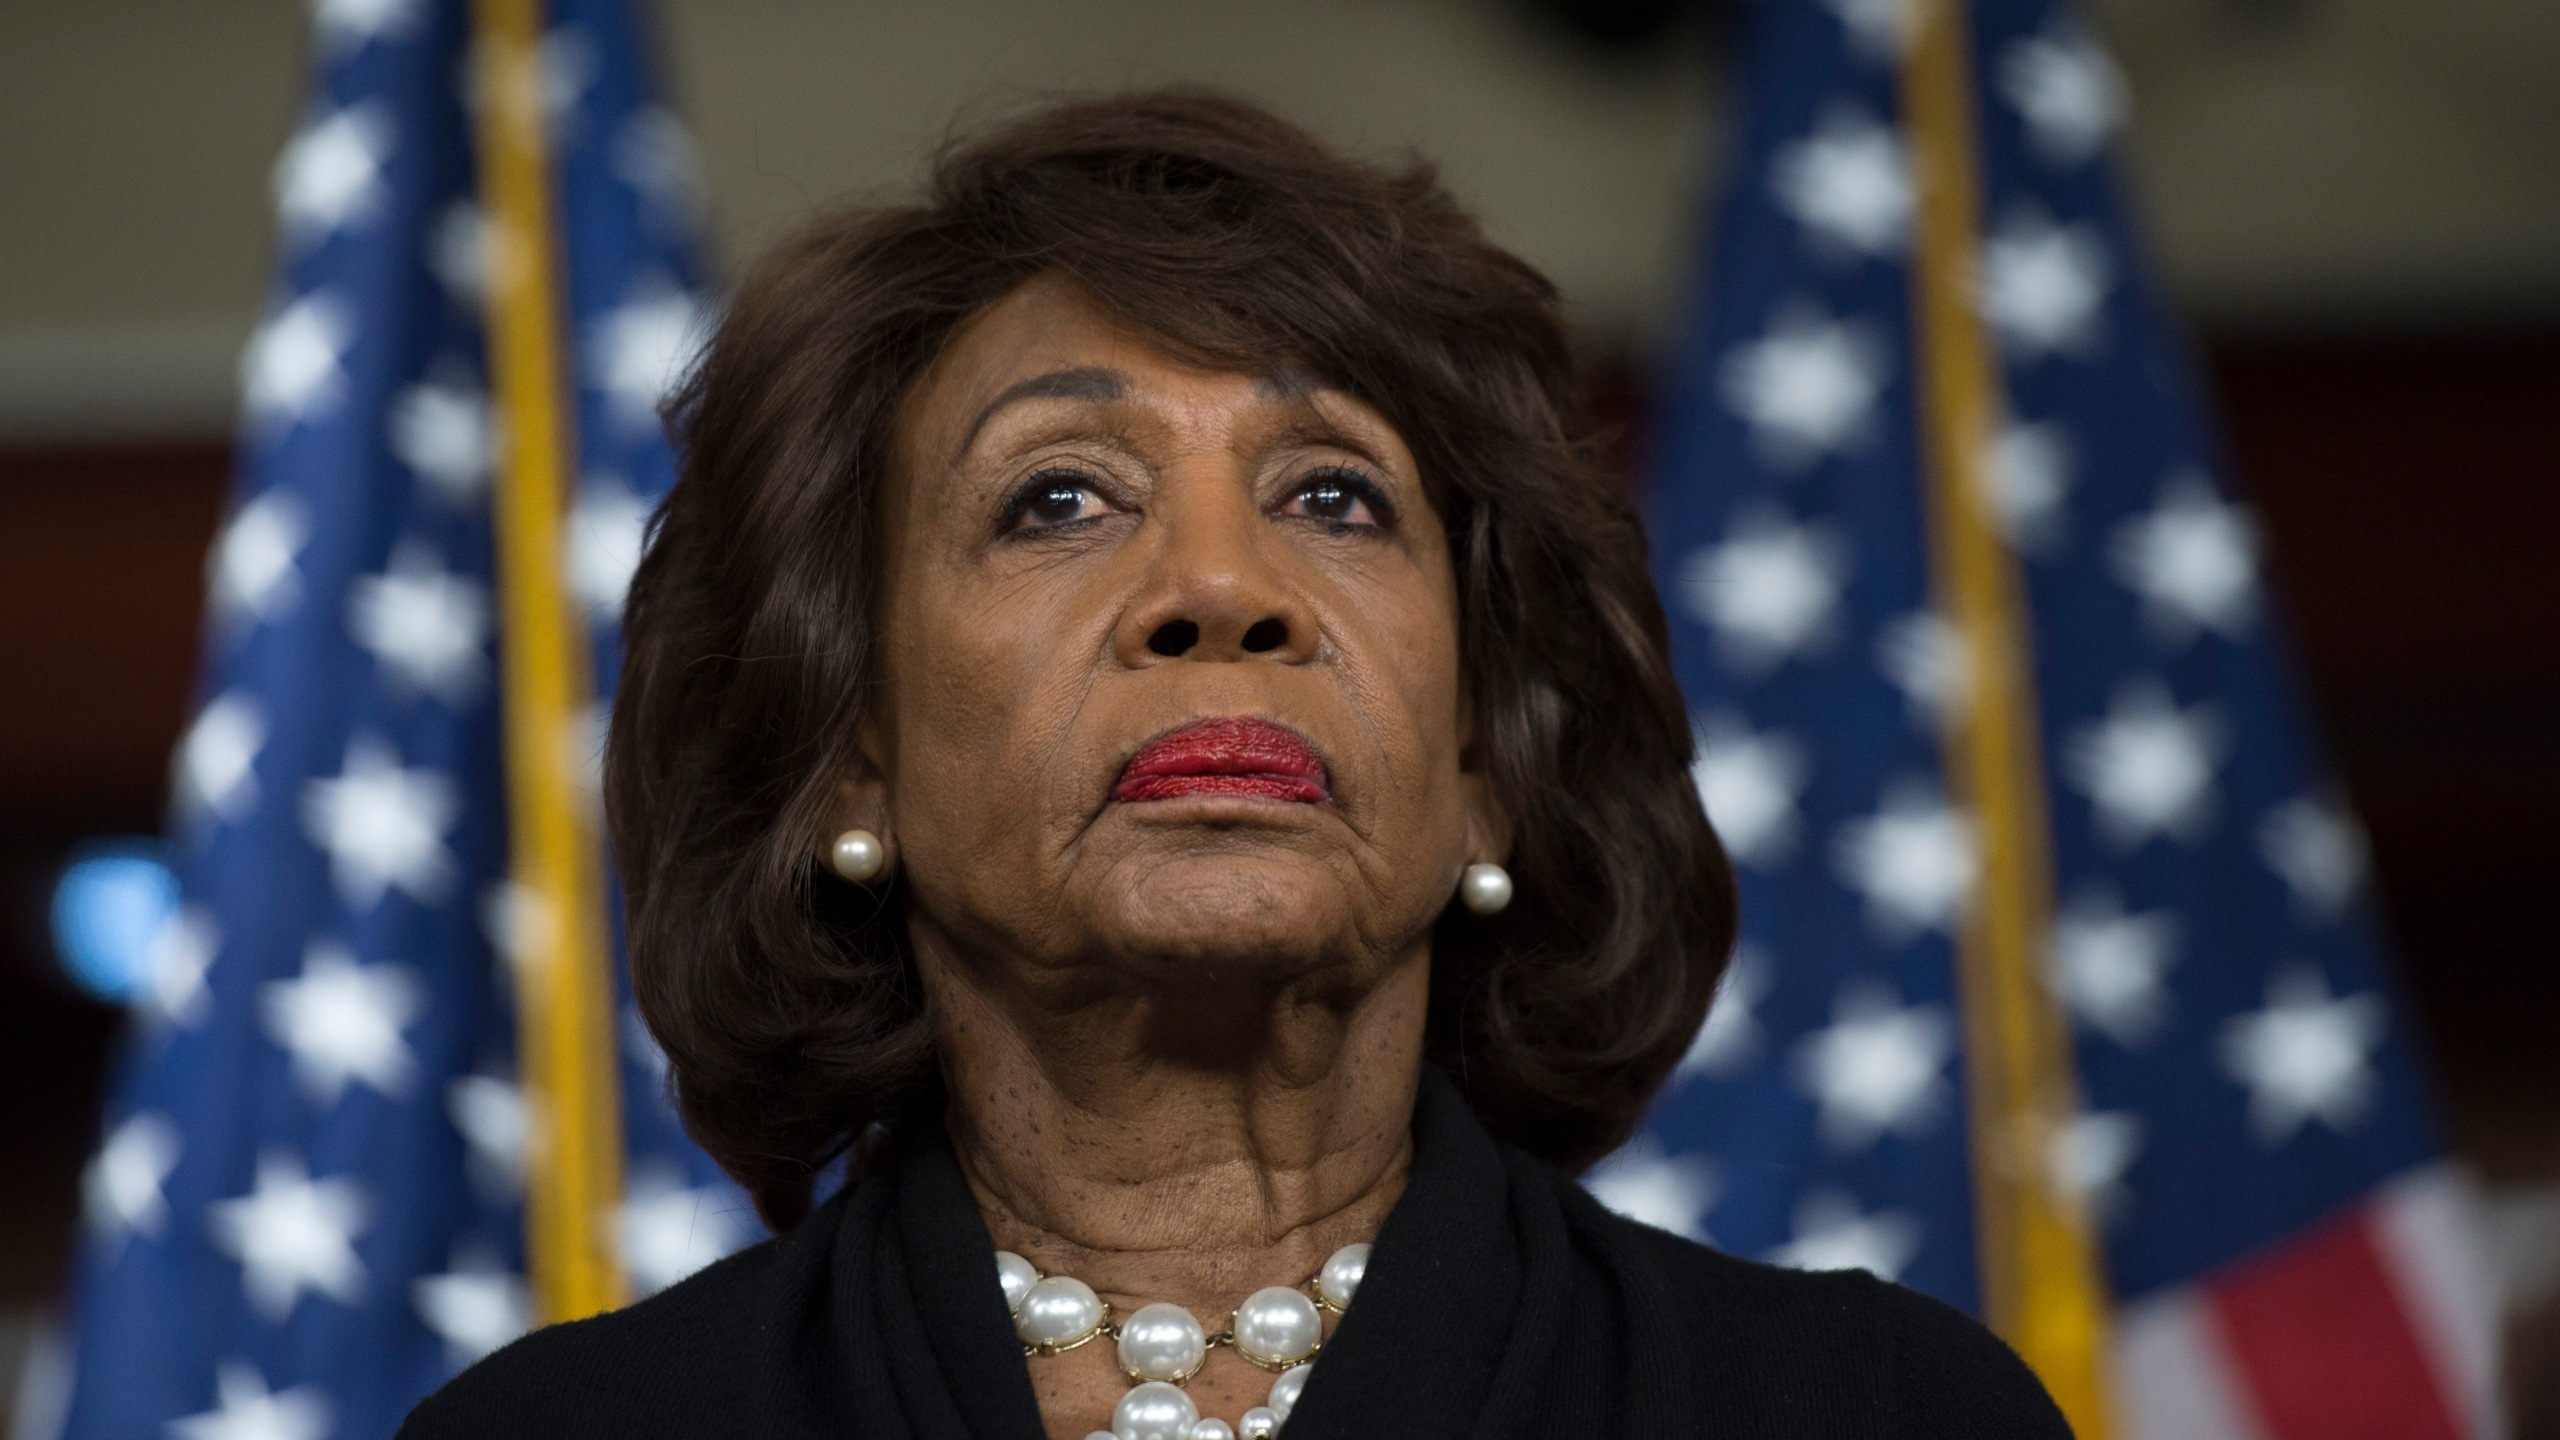 Rep. Maxine Waters looks on before speaking to reporters on Capitol Hill on Jan. 9, 2018. (Credit: Andrew Caballero-Reynolds / AFP / Getty Images)